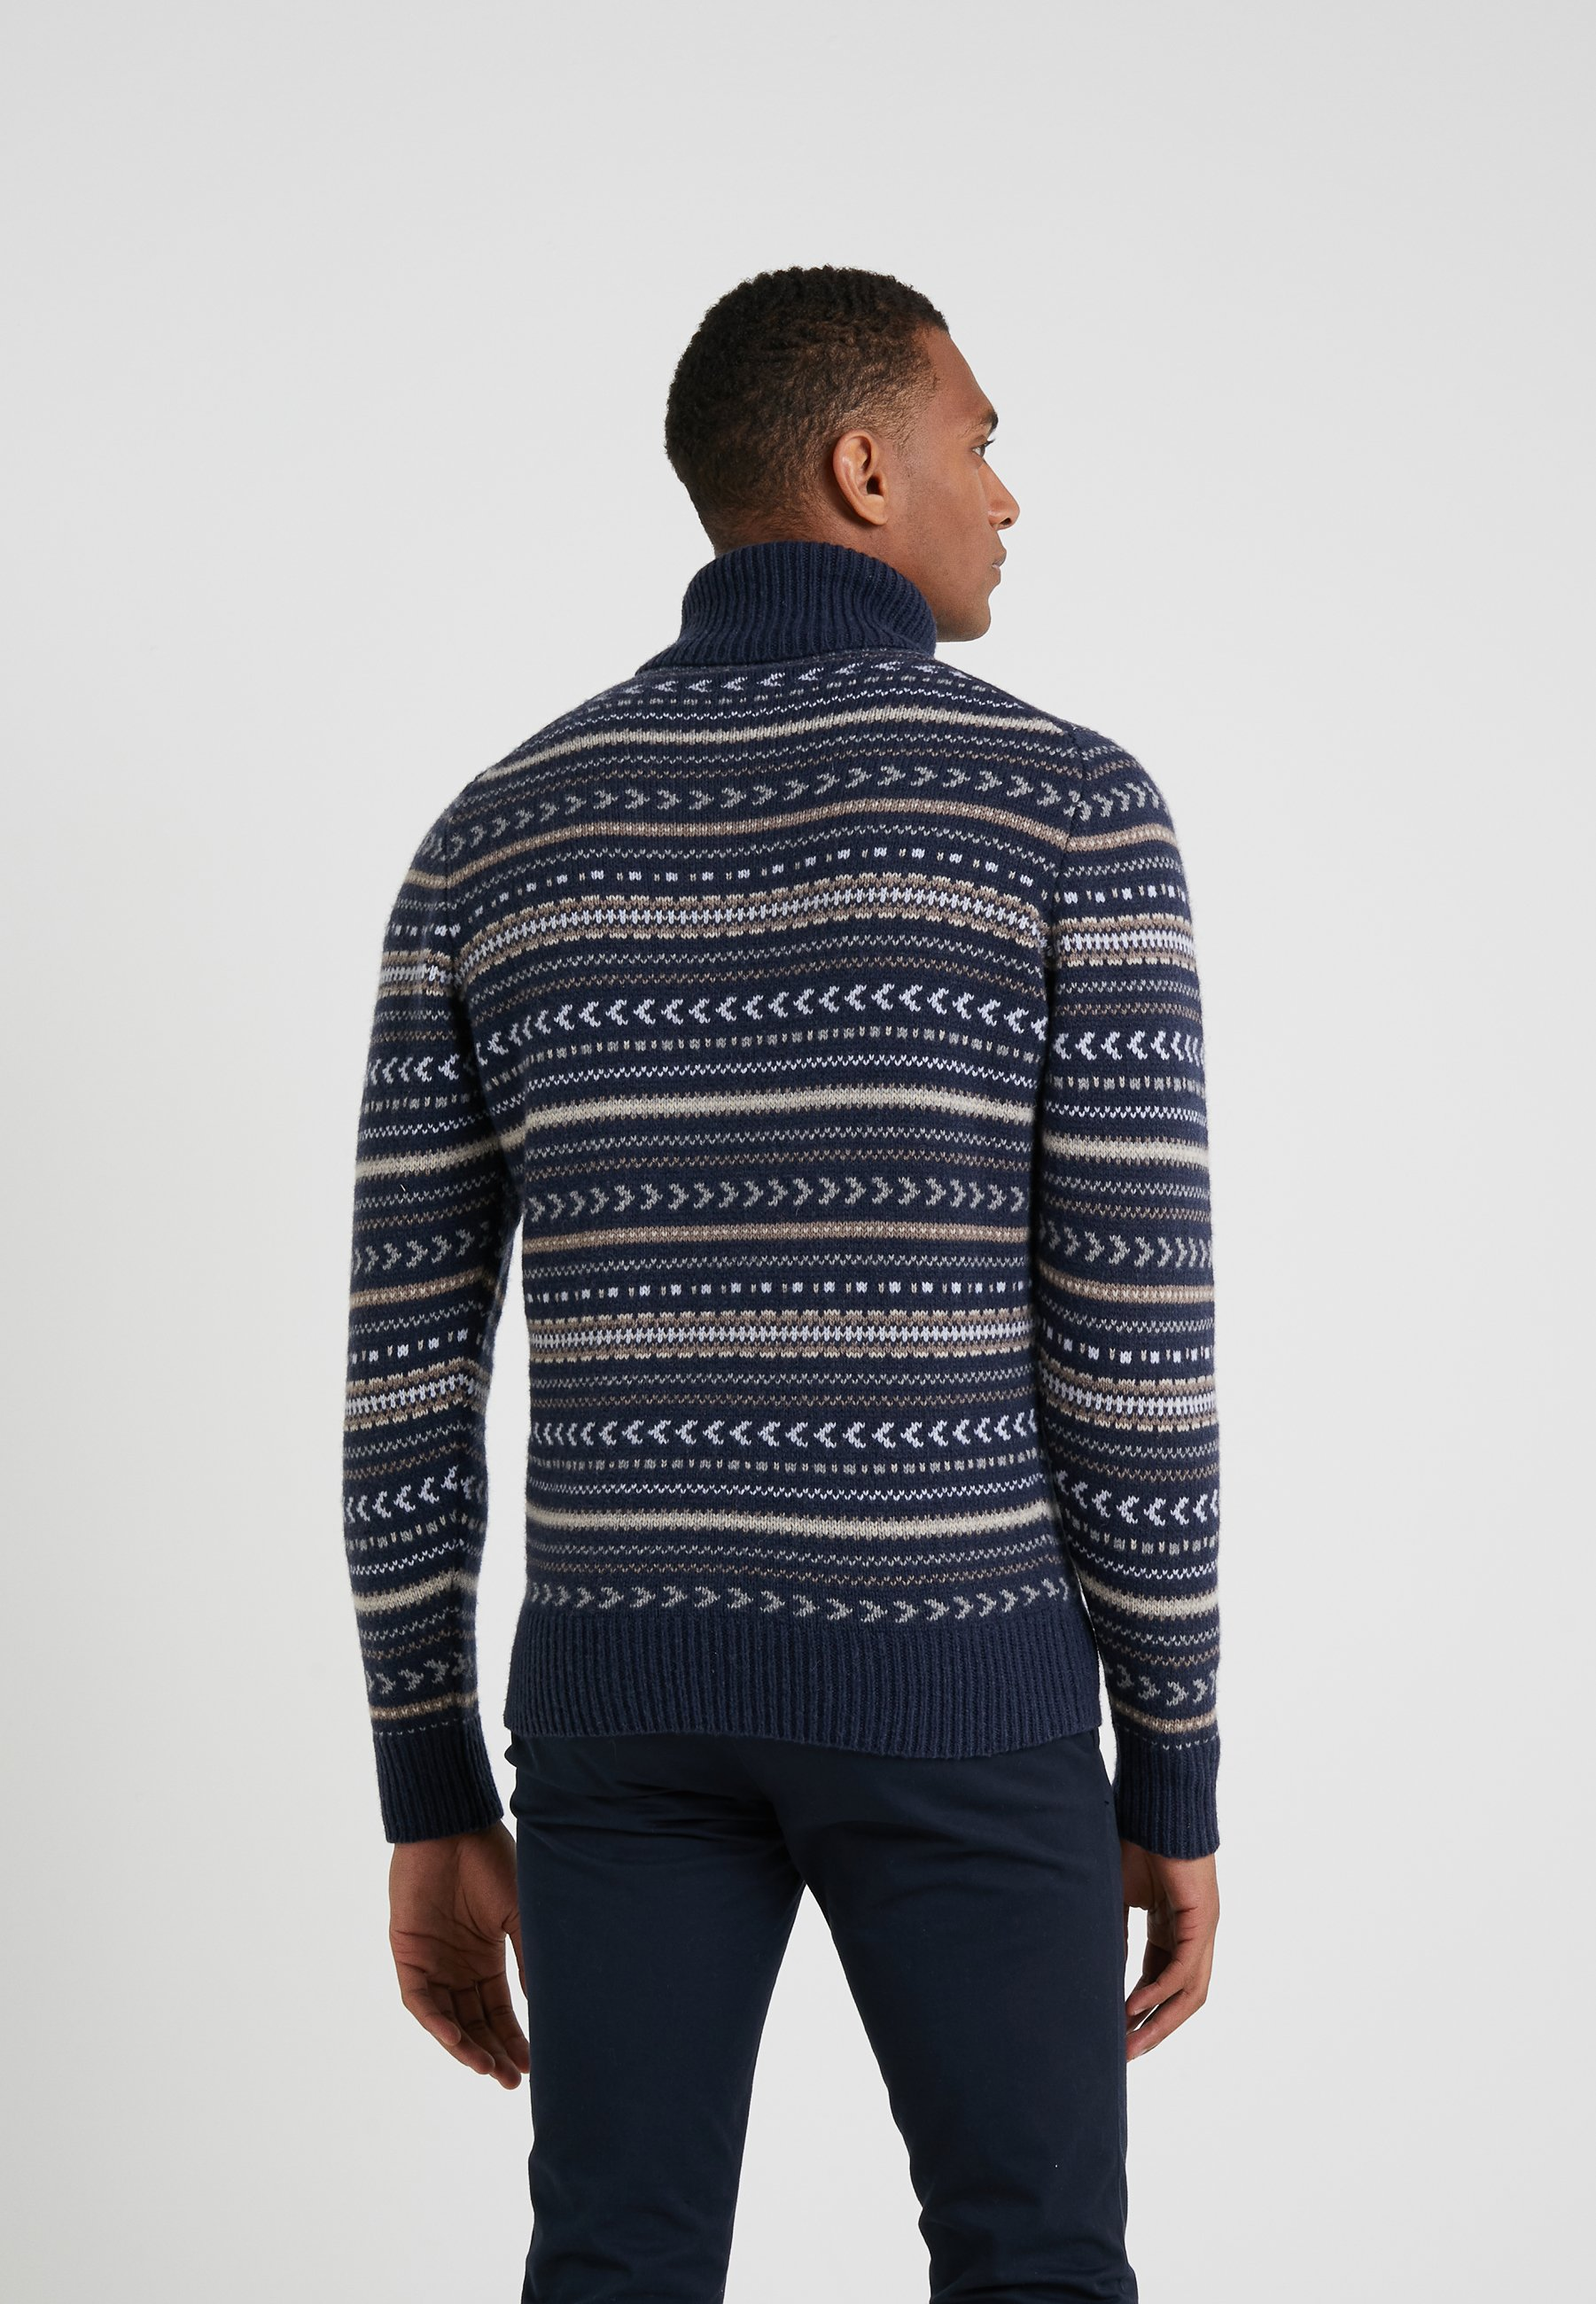 NeckPullover blue Roll Hackett London Fairisle Multi hQtsrdCx